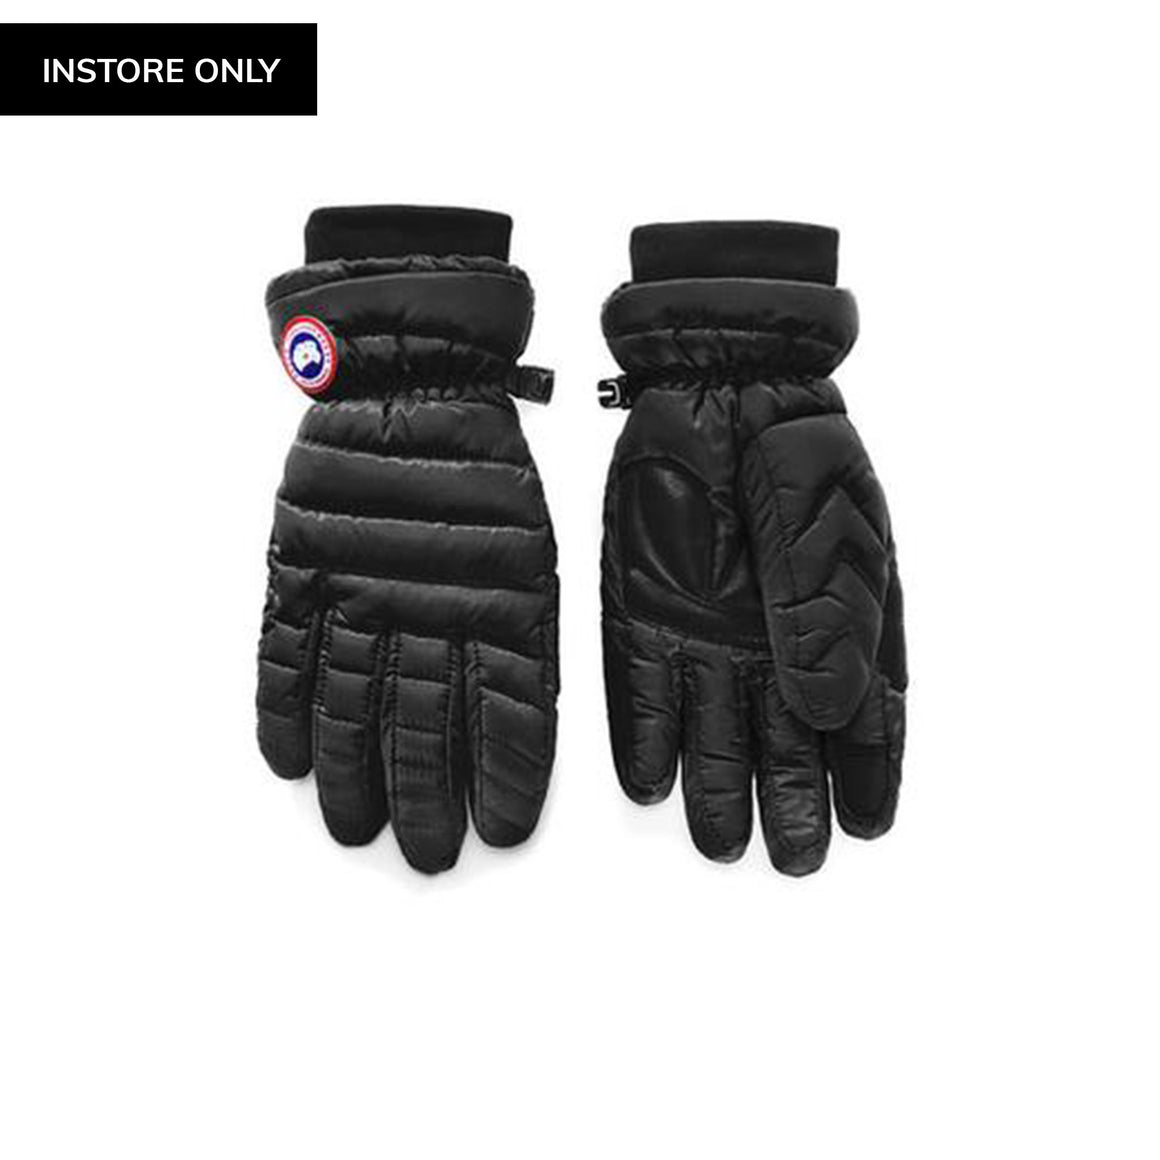 Canada Goose Lightweight Gloves - Women's